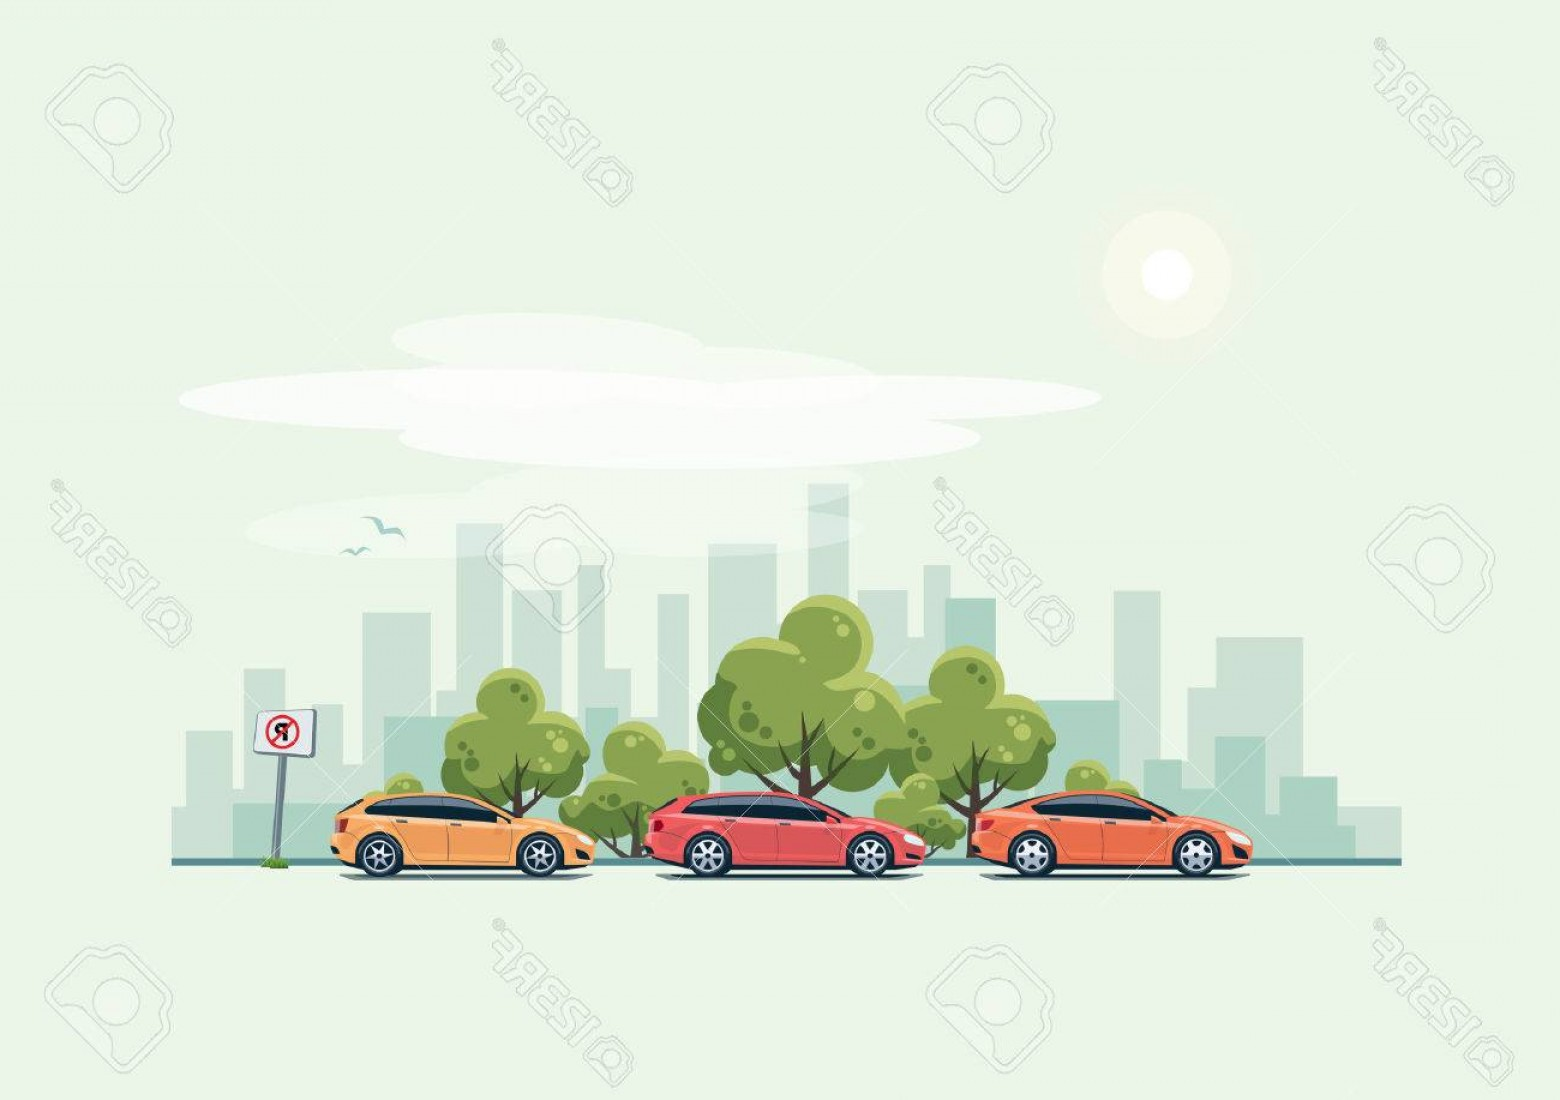 Cars Skyline Vector: Photostock Vector Vector Illustration Of Modern Cars Parking Along The City Street With Green Trees In Cartoon Style H